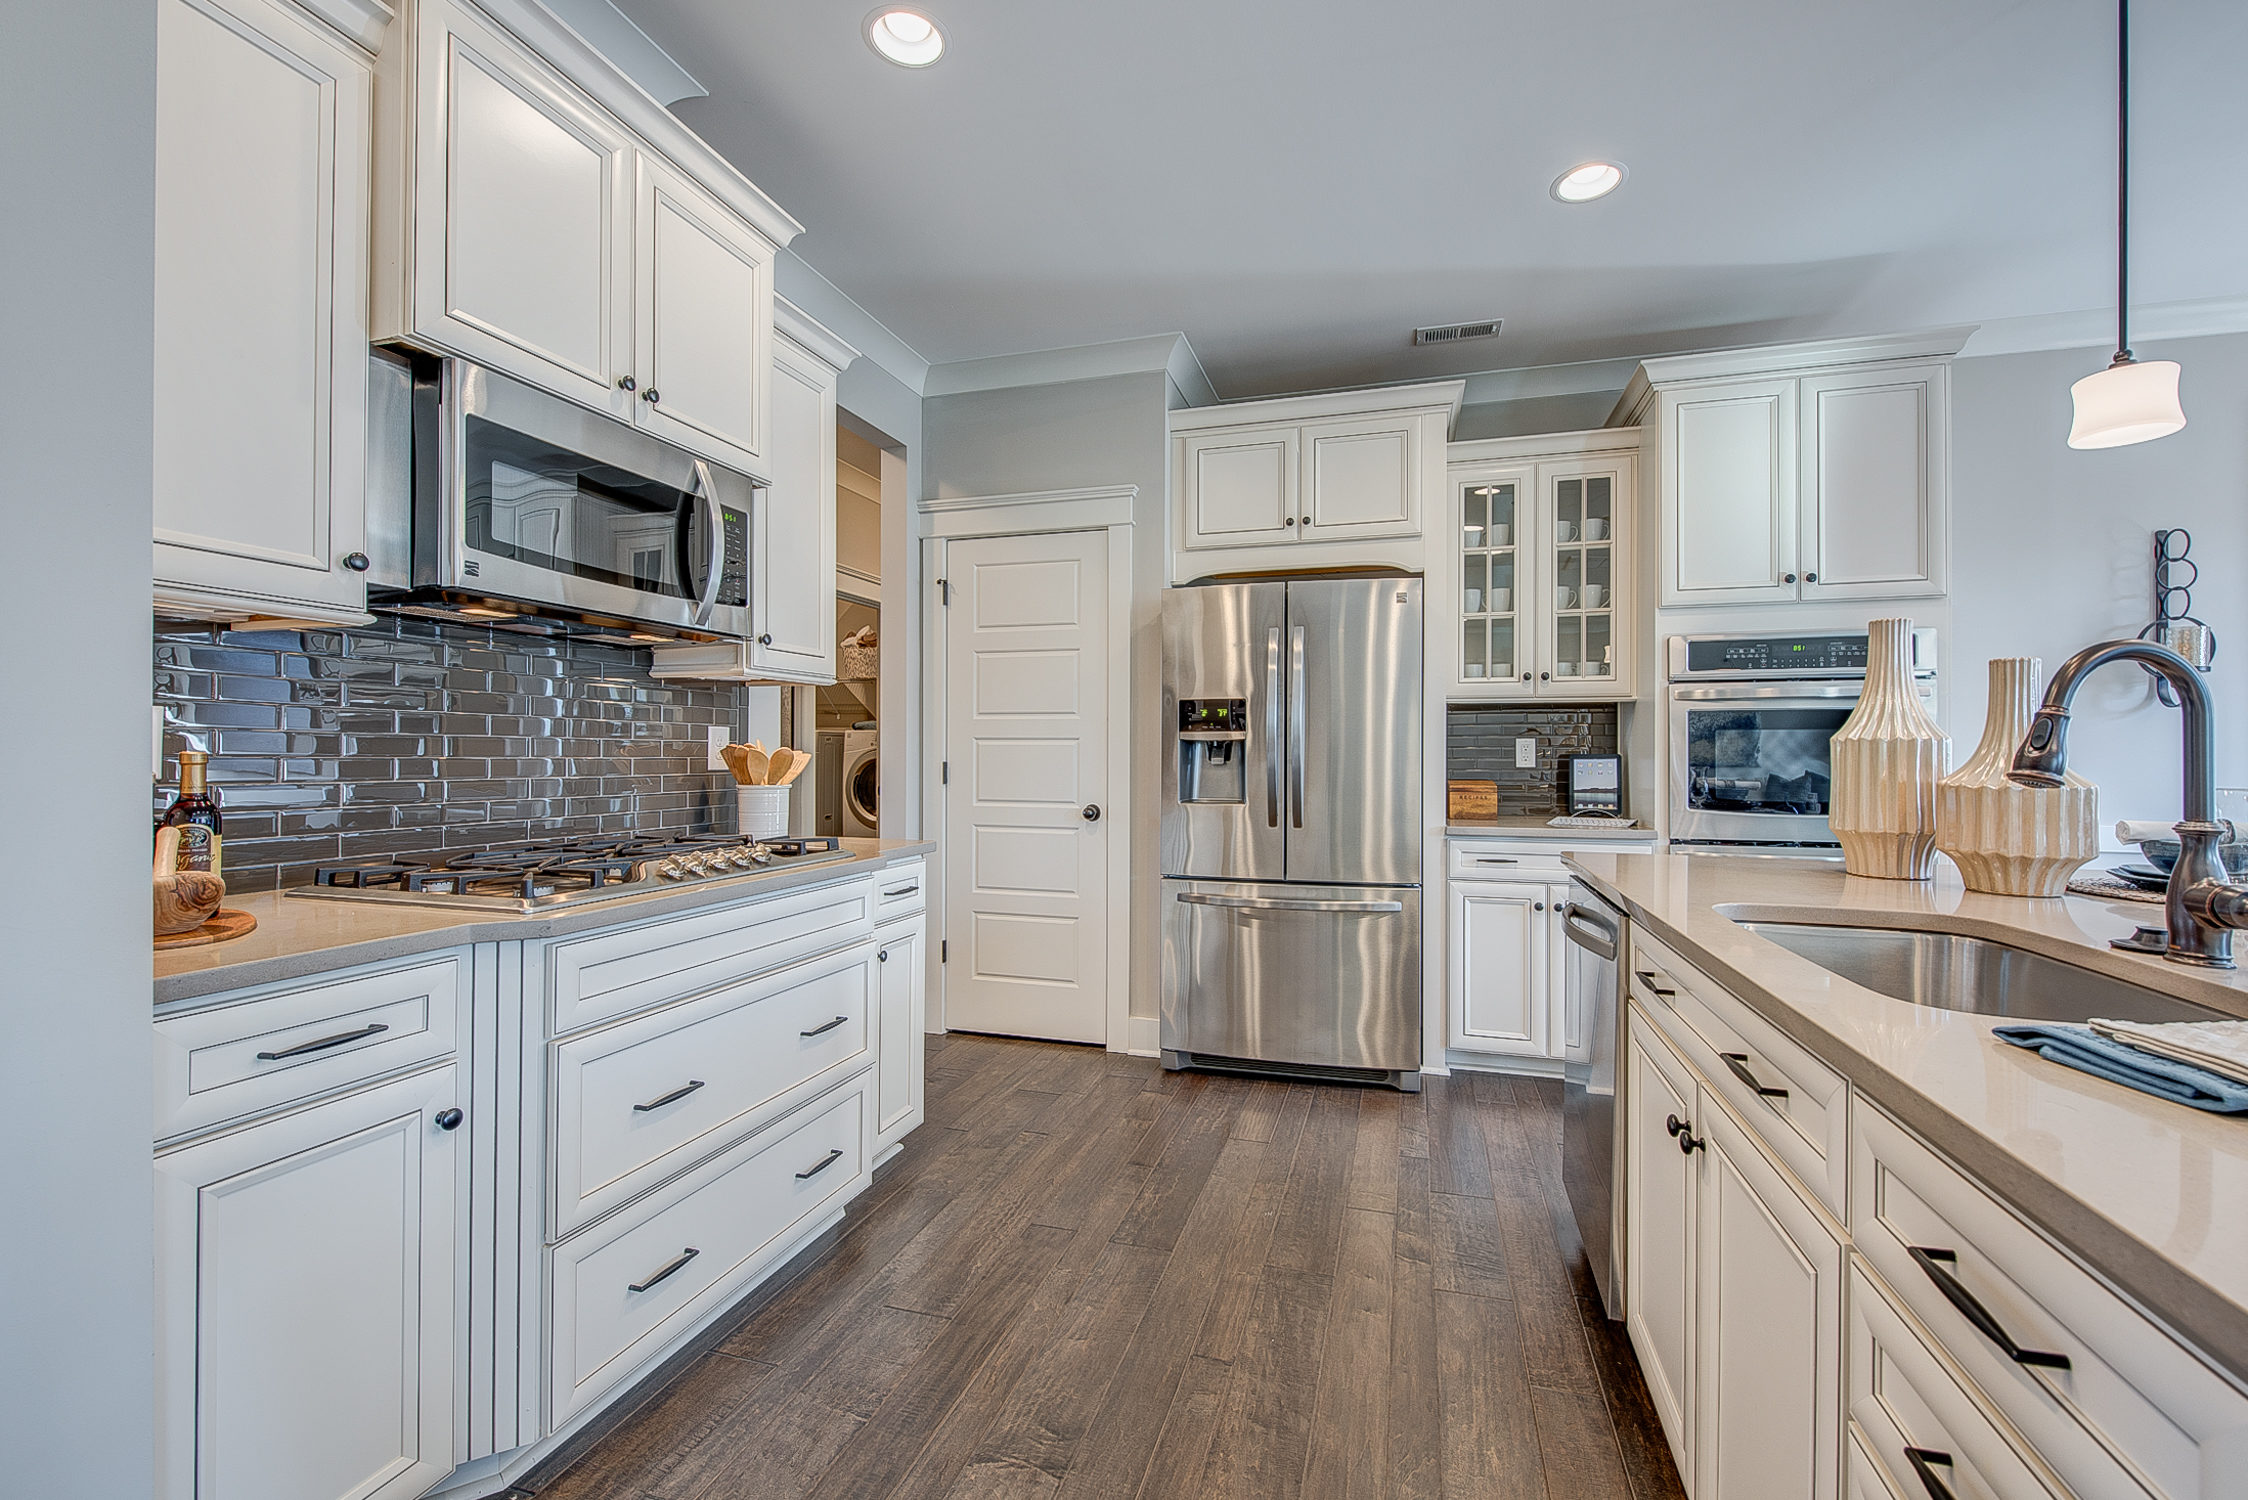 104-bushney-loop-mooresville-print-018-15-kitchen-2248x1500-300dpi_33628712711_o.jpg